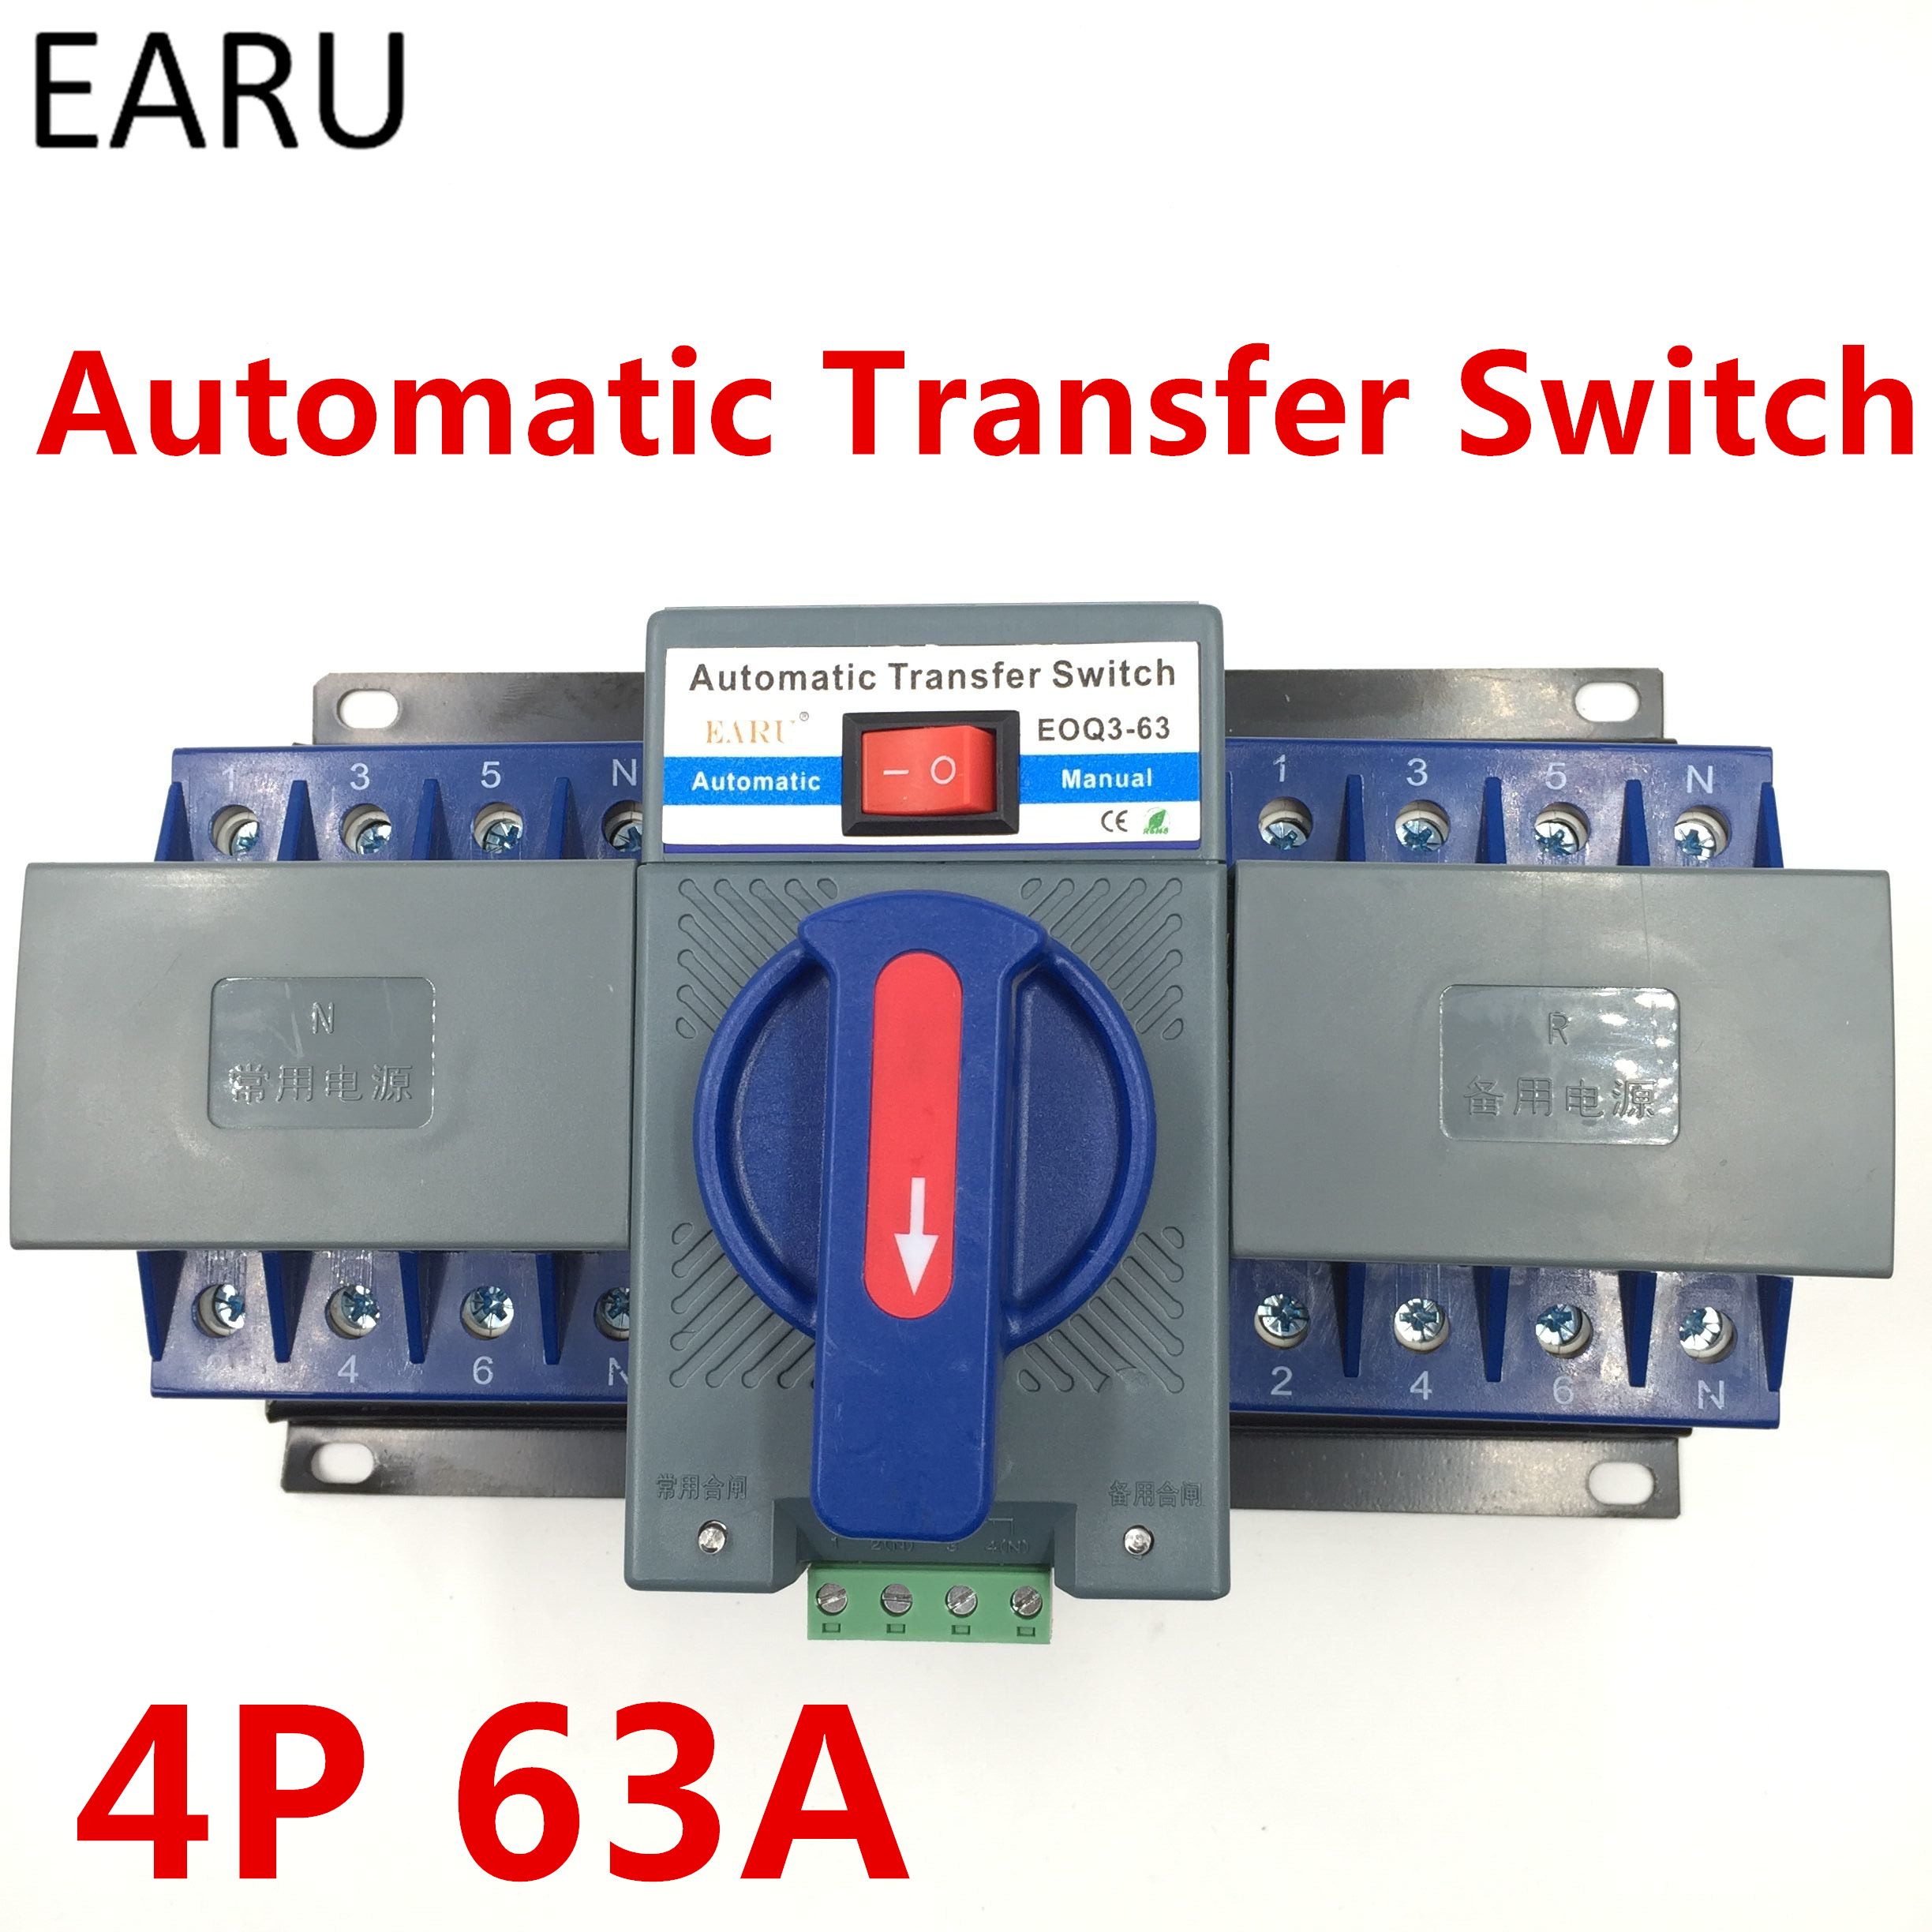 4p 63a 380v Mcb Type Dual Power Automatic Transfer Switch